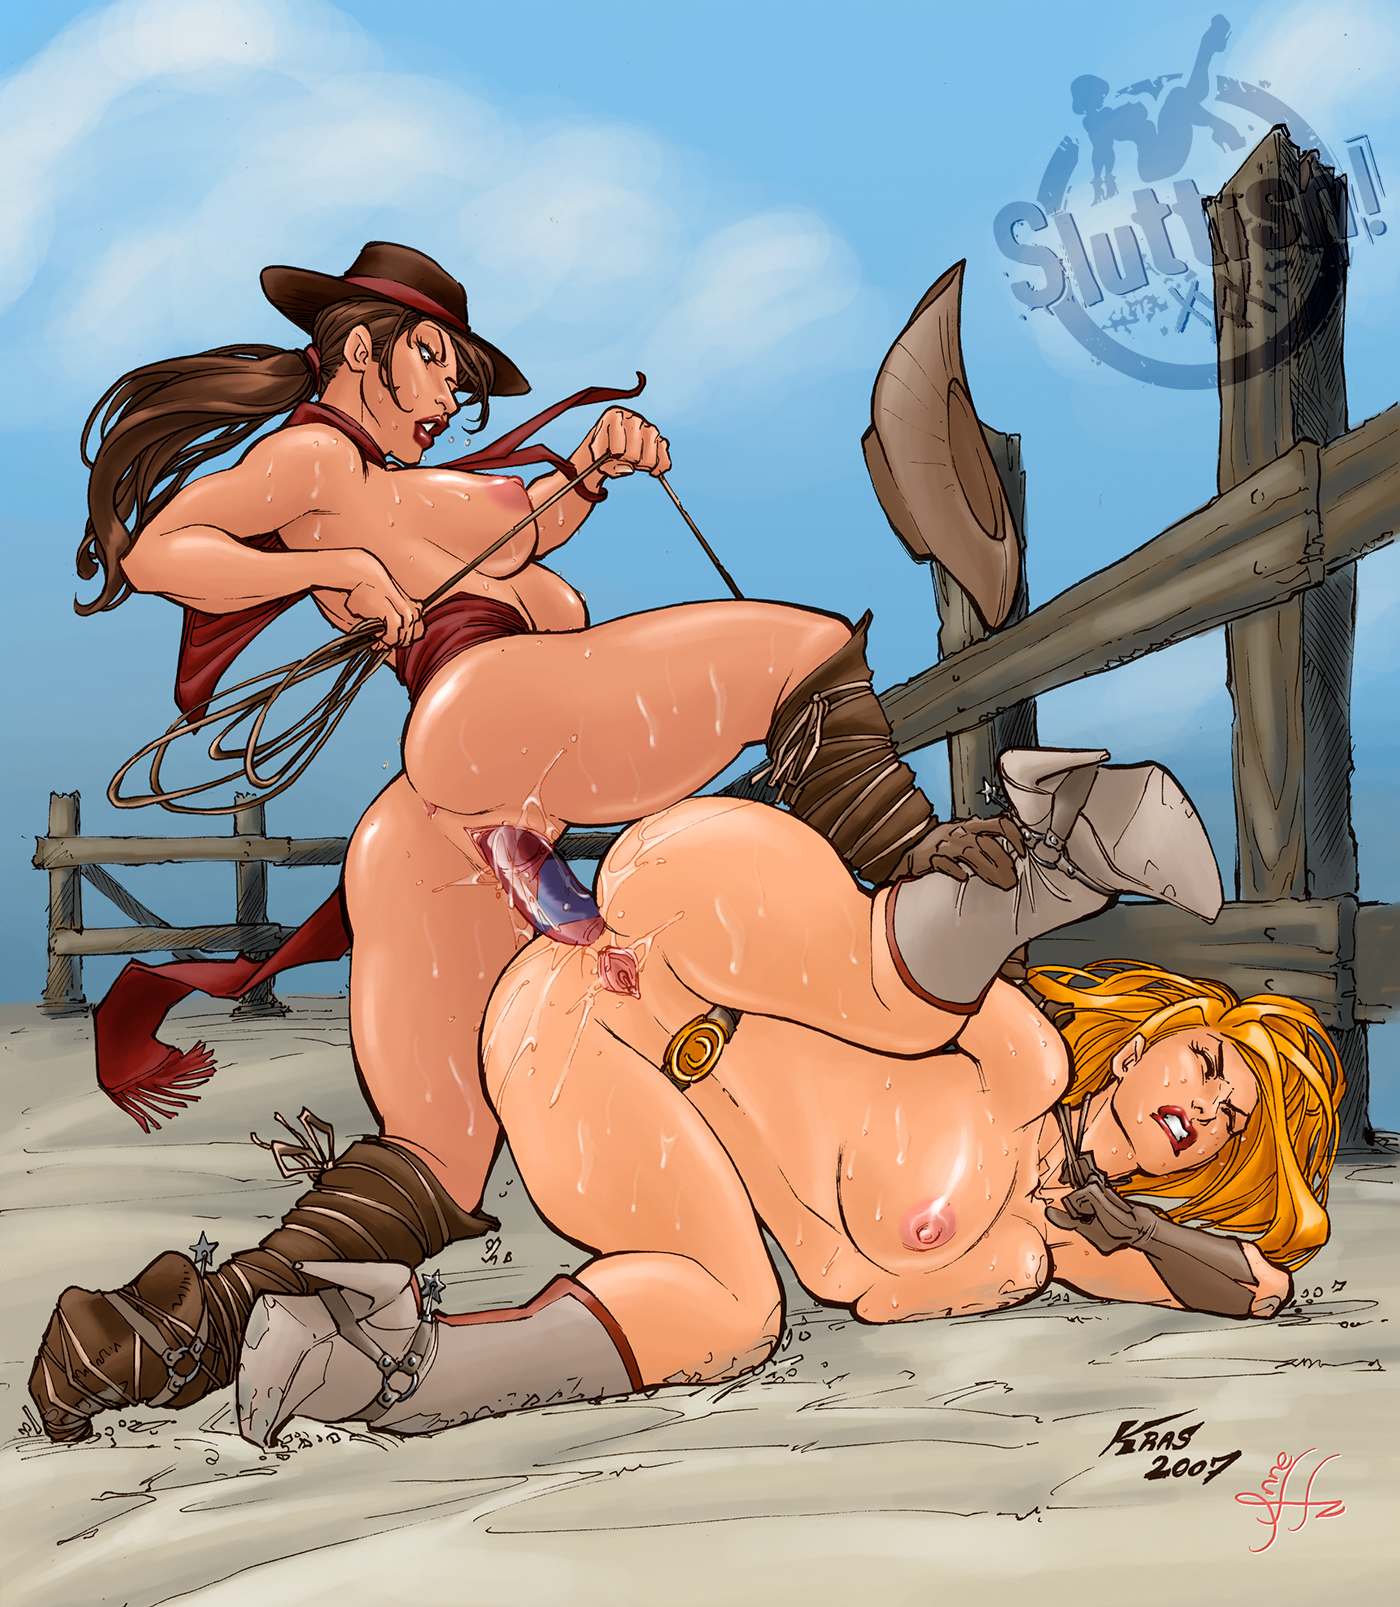 Cartoon cow porno sexy pics